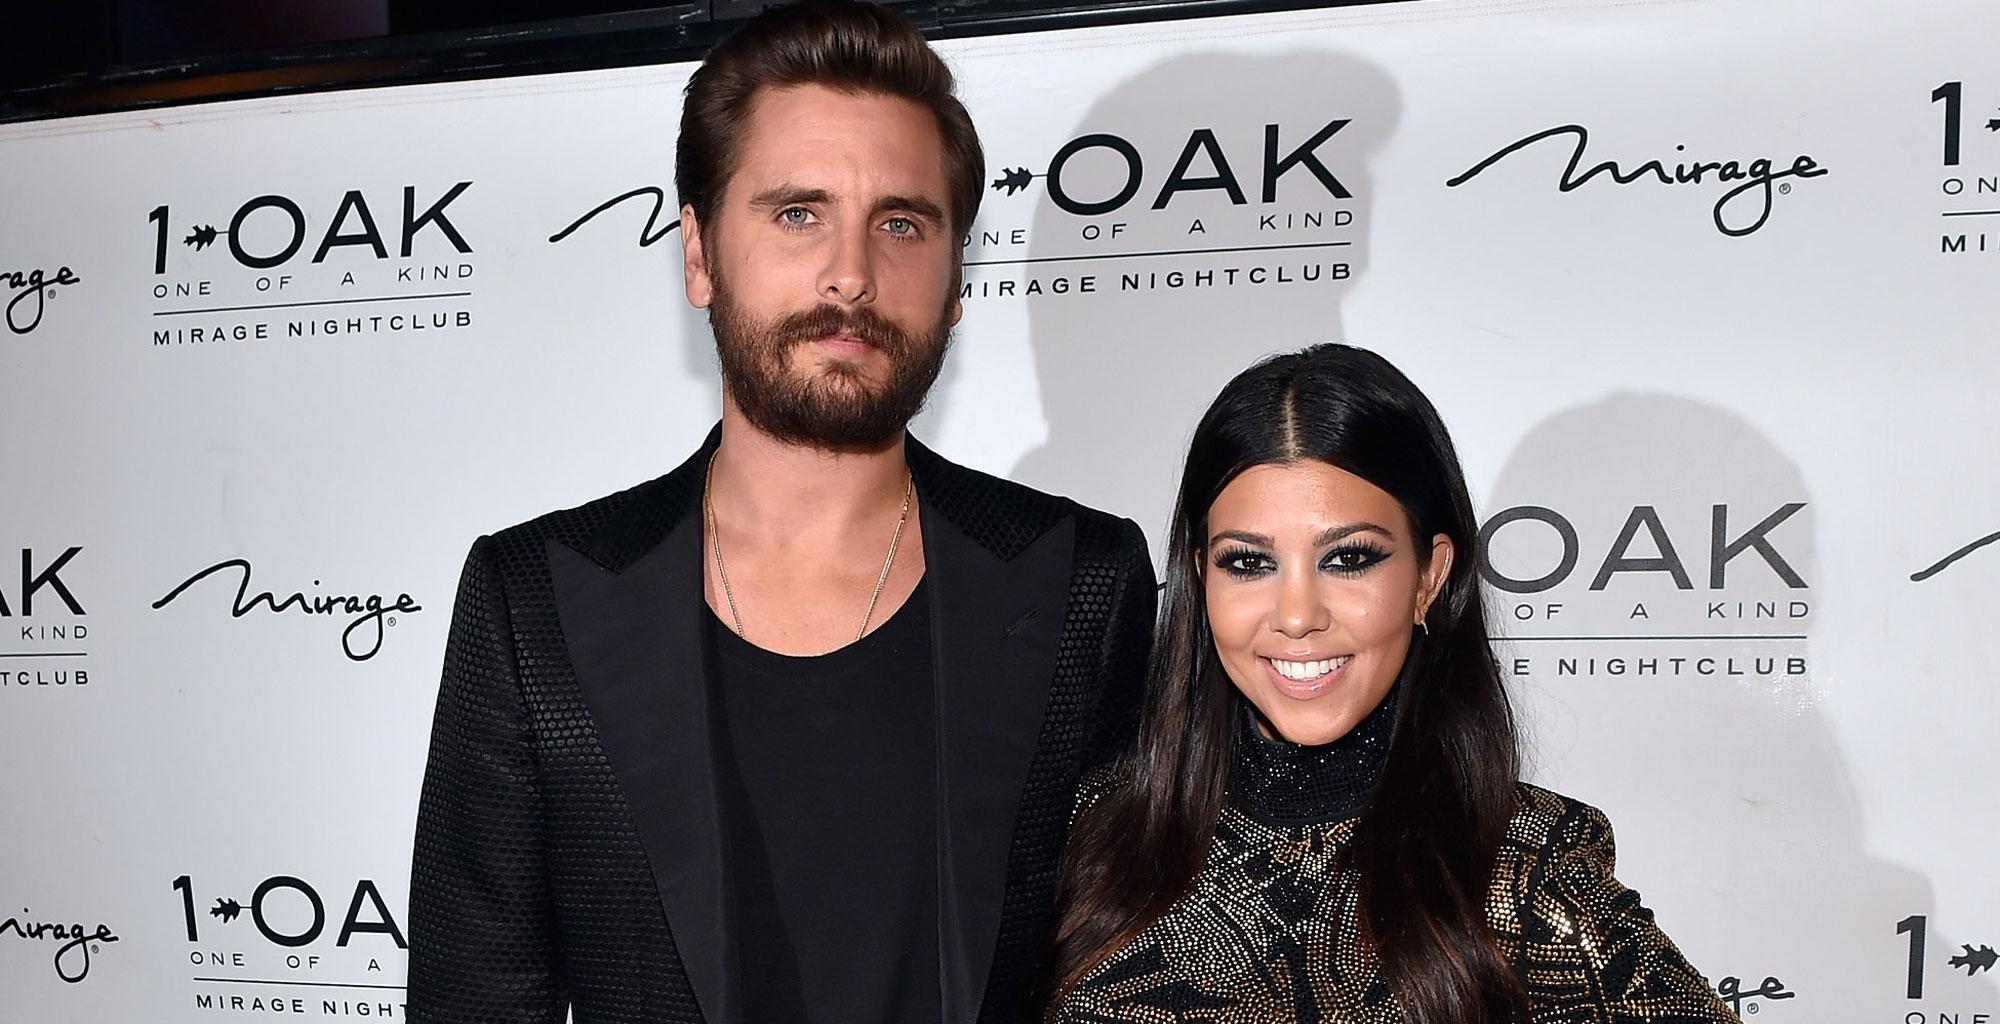 Kourtney Kardashian - Here's What The KUWK Star Wants To Teach People Through Her Co-Parenting With Scott Disick